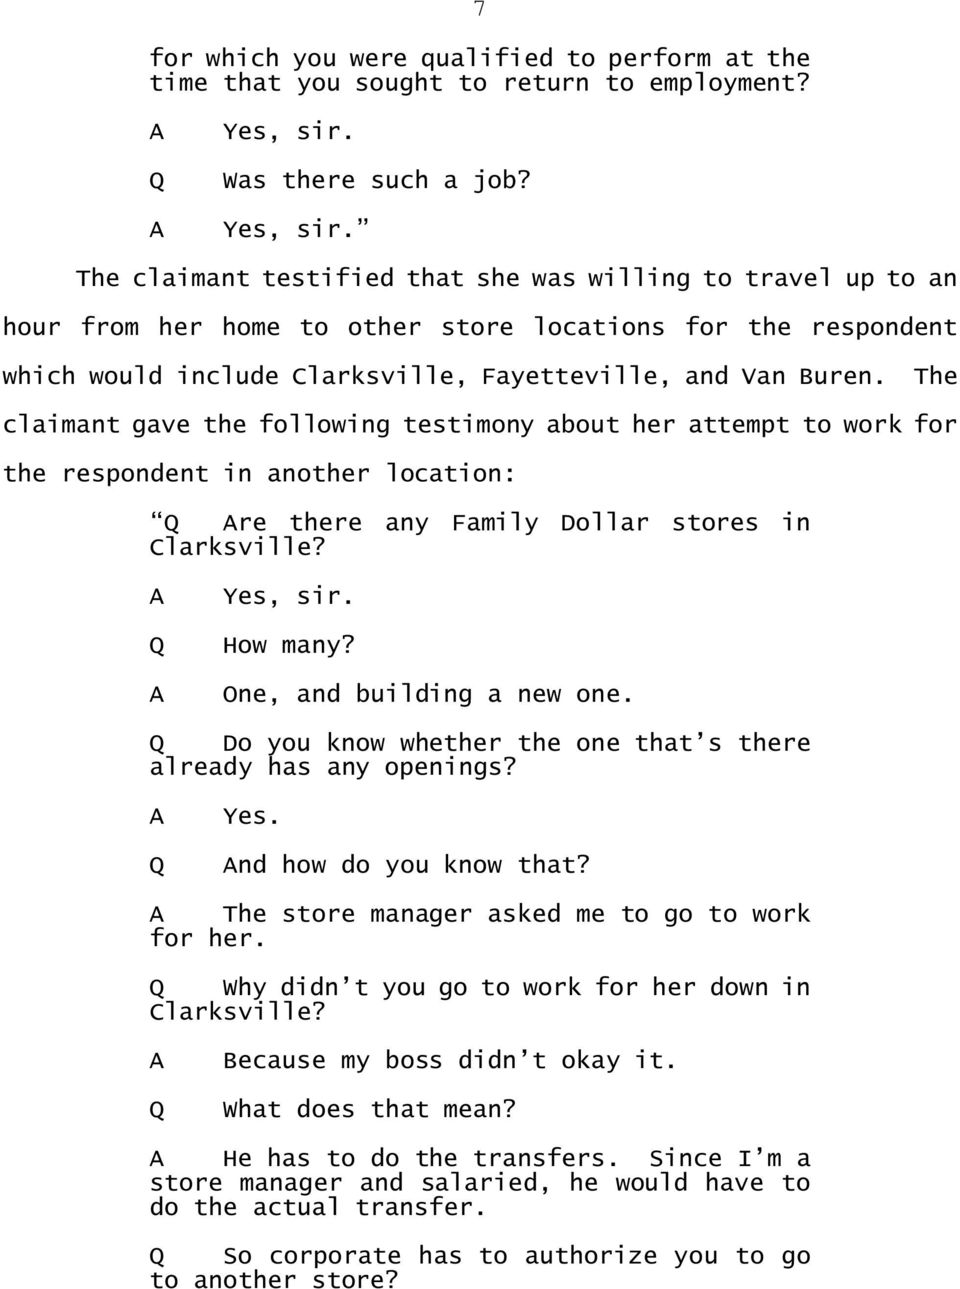 The claimant gave the following testimony about her attempt to work for the respondent in another location: re there any Family Dollar stores in Clarksville? How many? One, and building a new one.